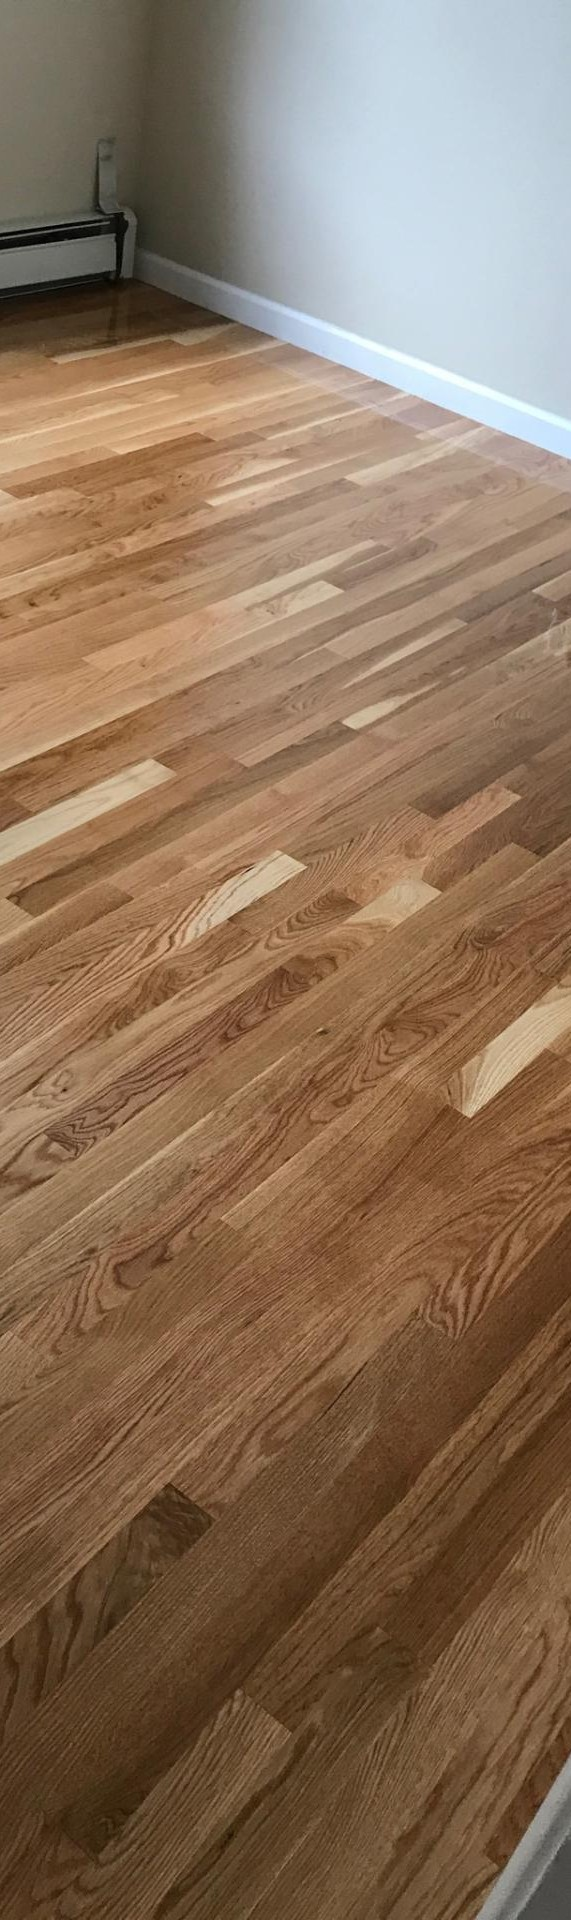 natural white oak hardwood floors